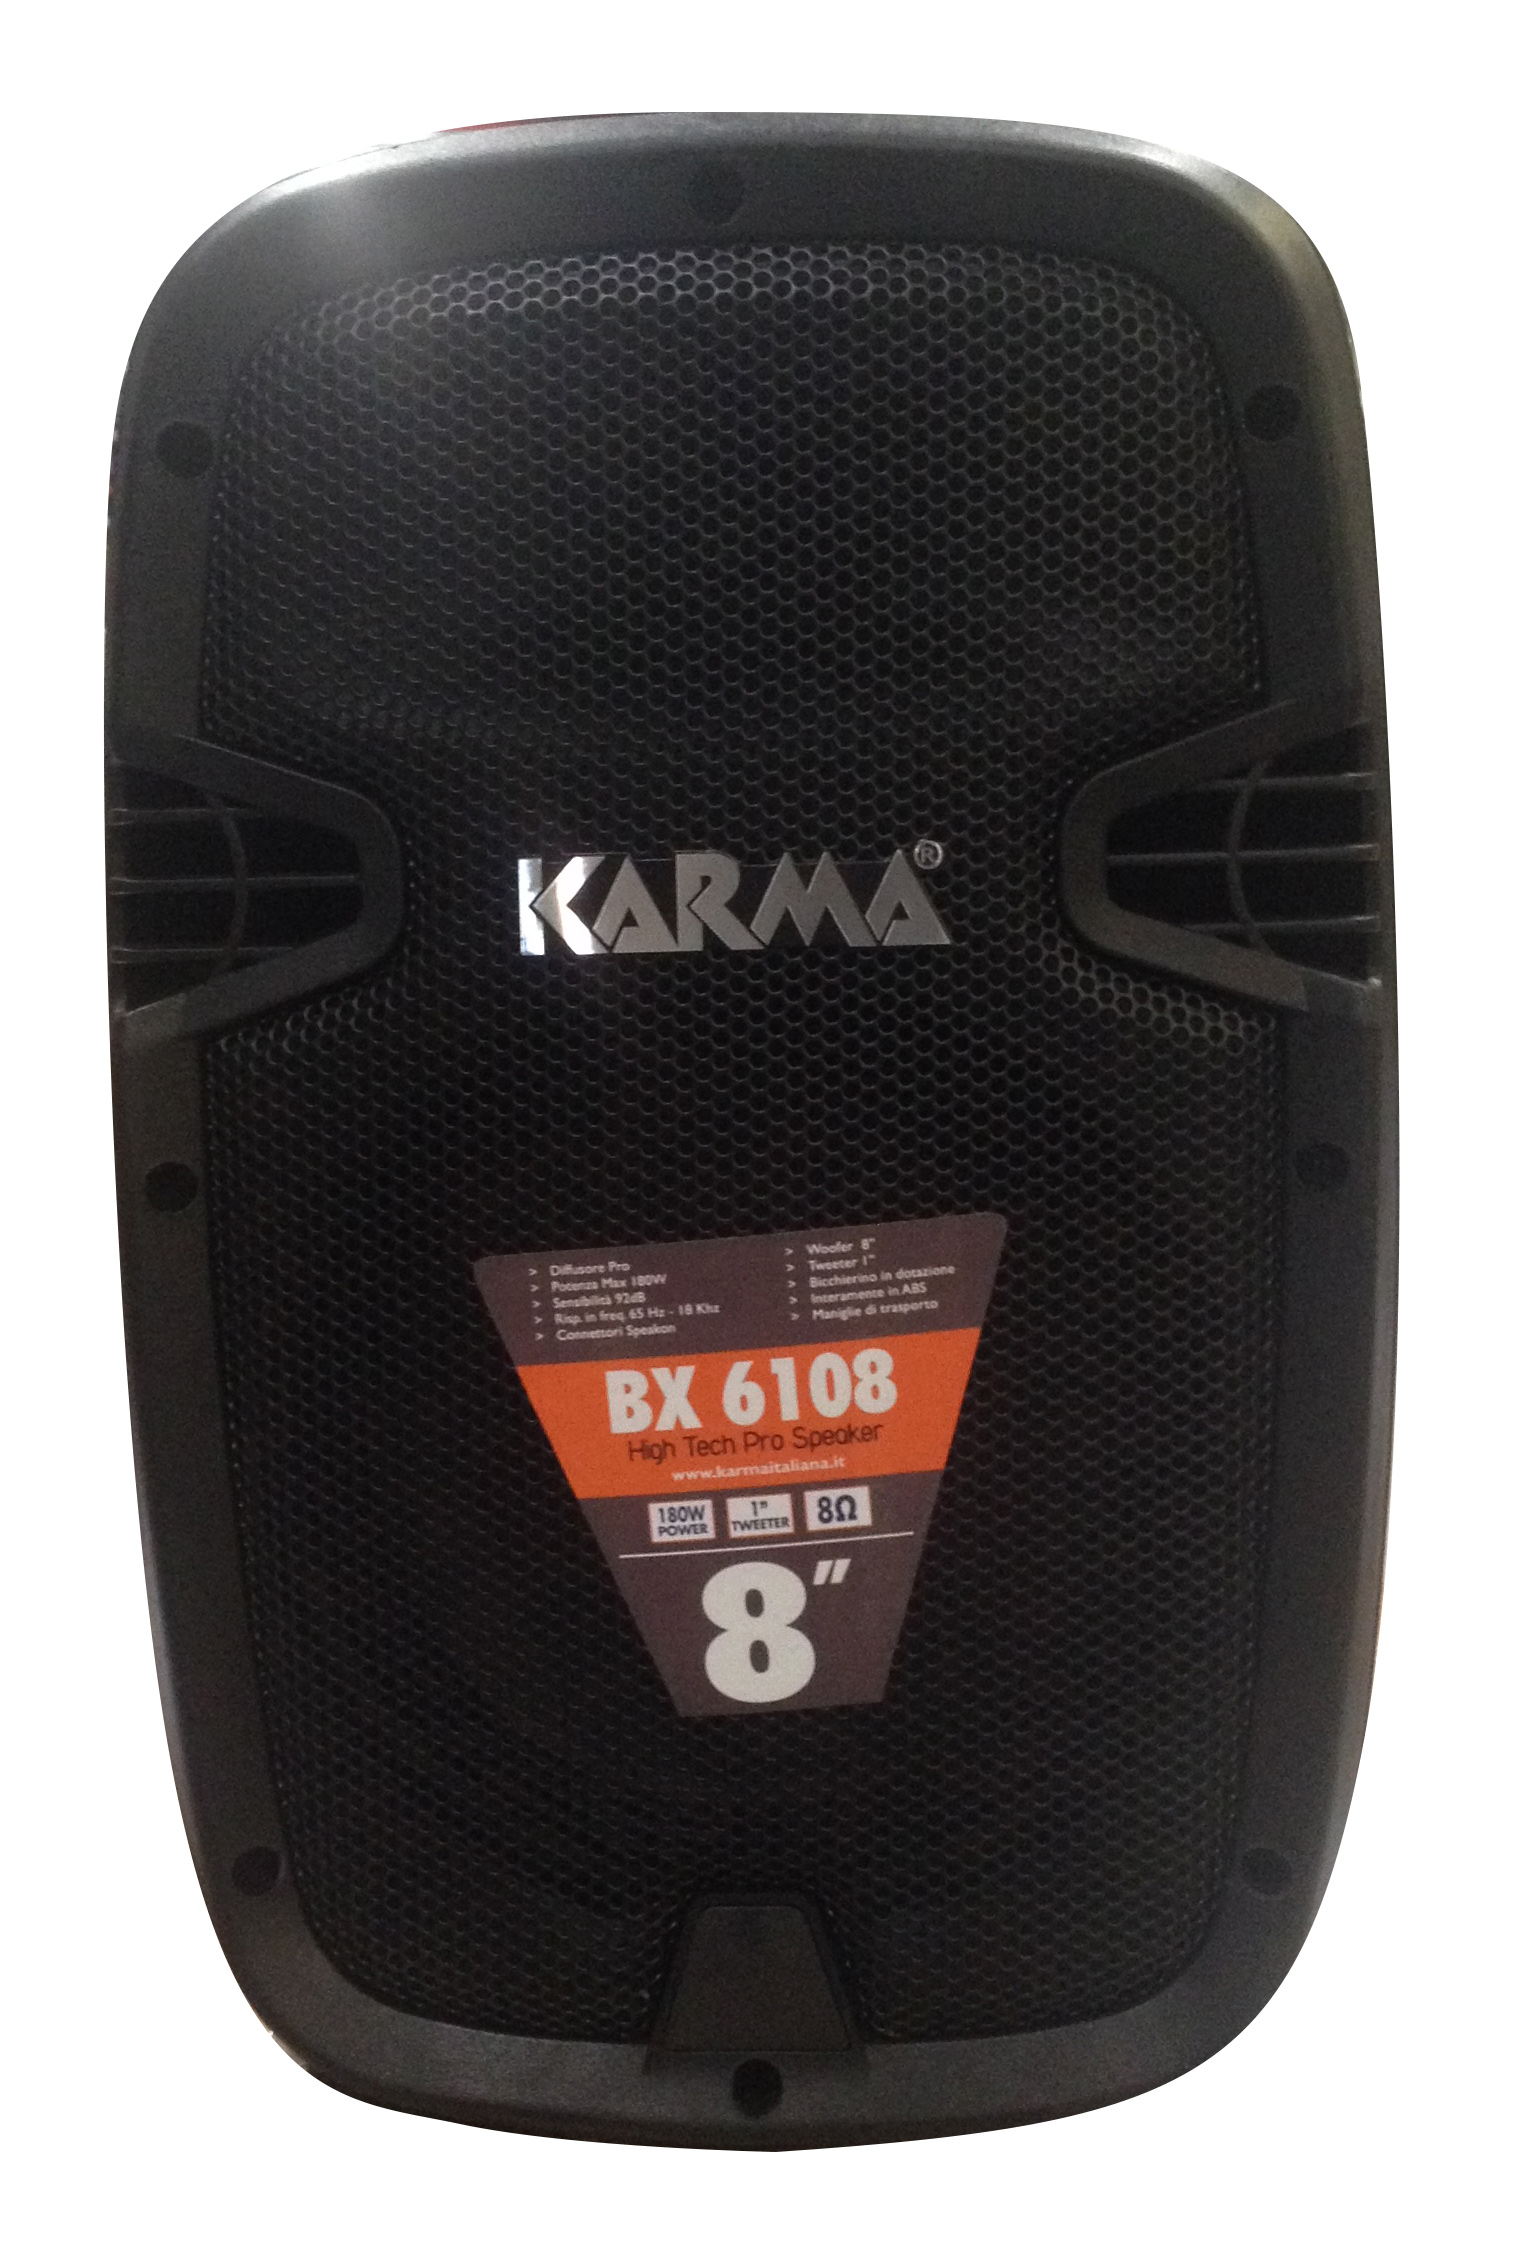 Diffusore in ABS 180W KARMA BX 6108